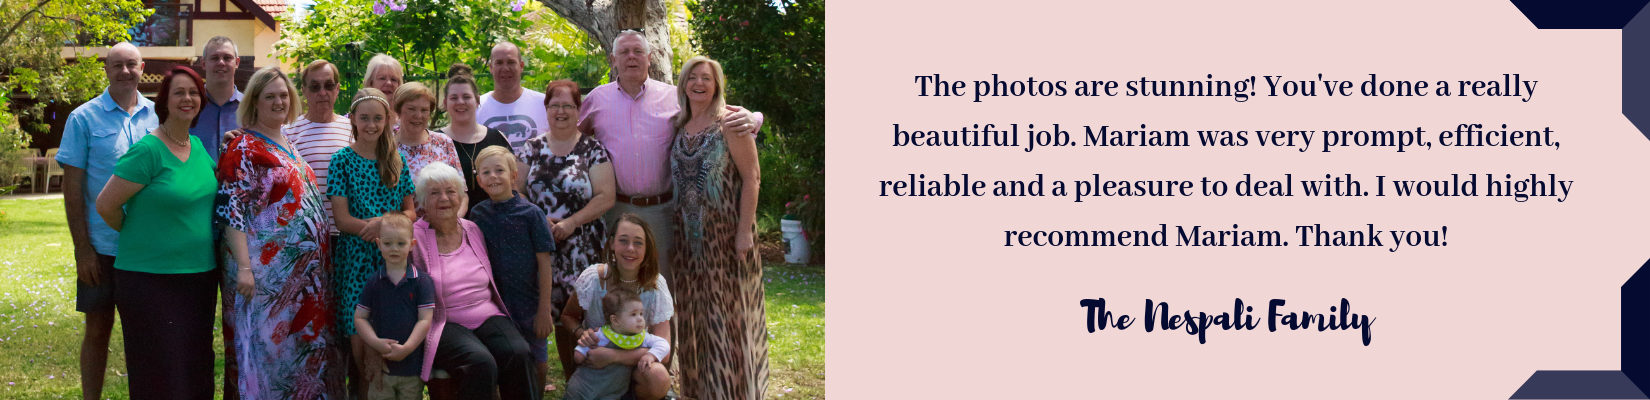 Photographed With Love - Sydney Family Photography Review